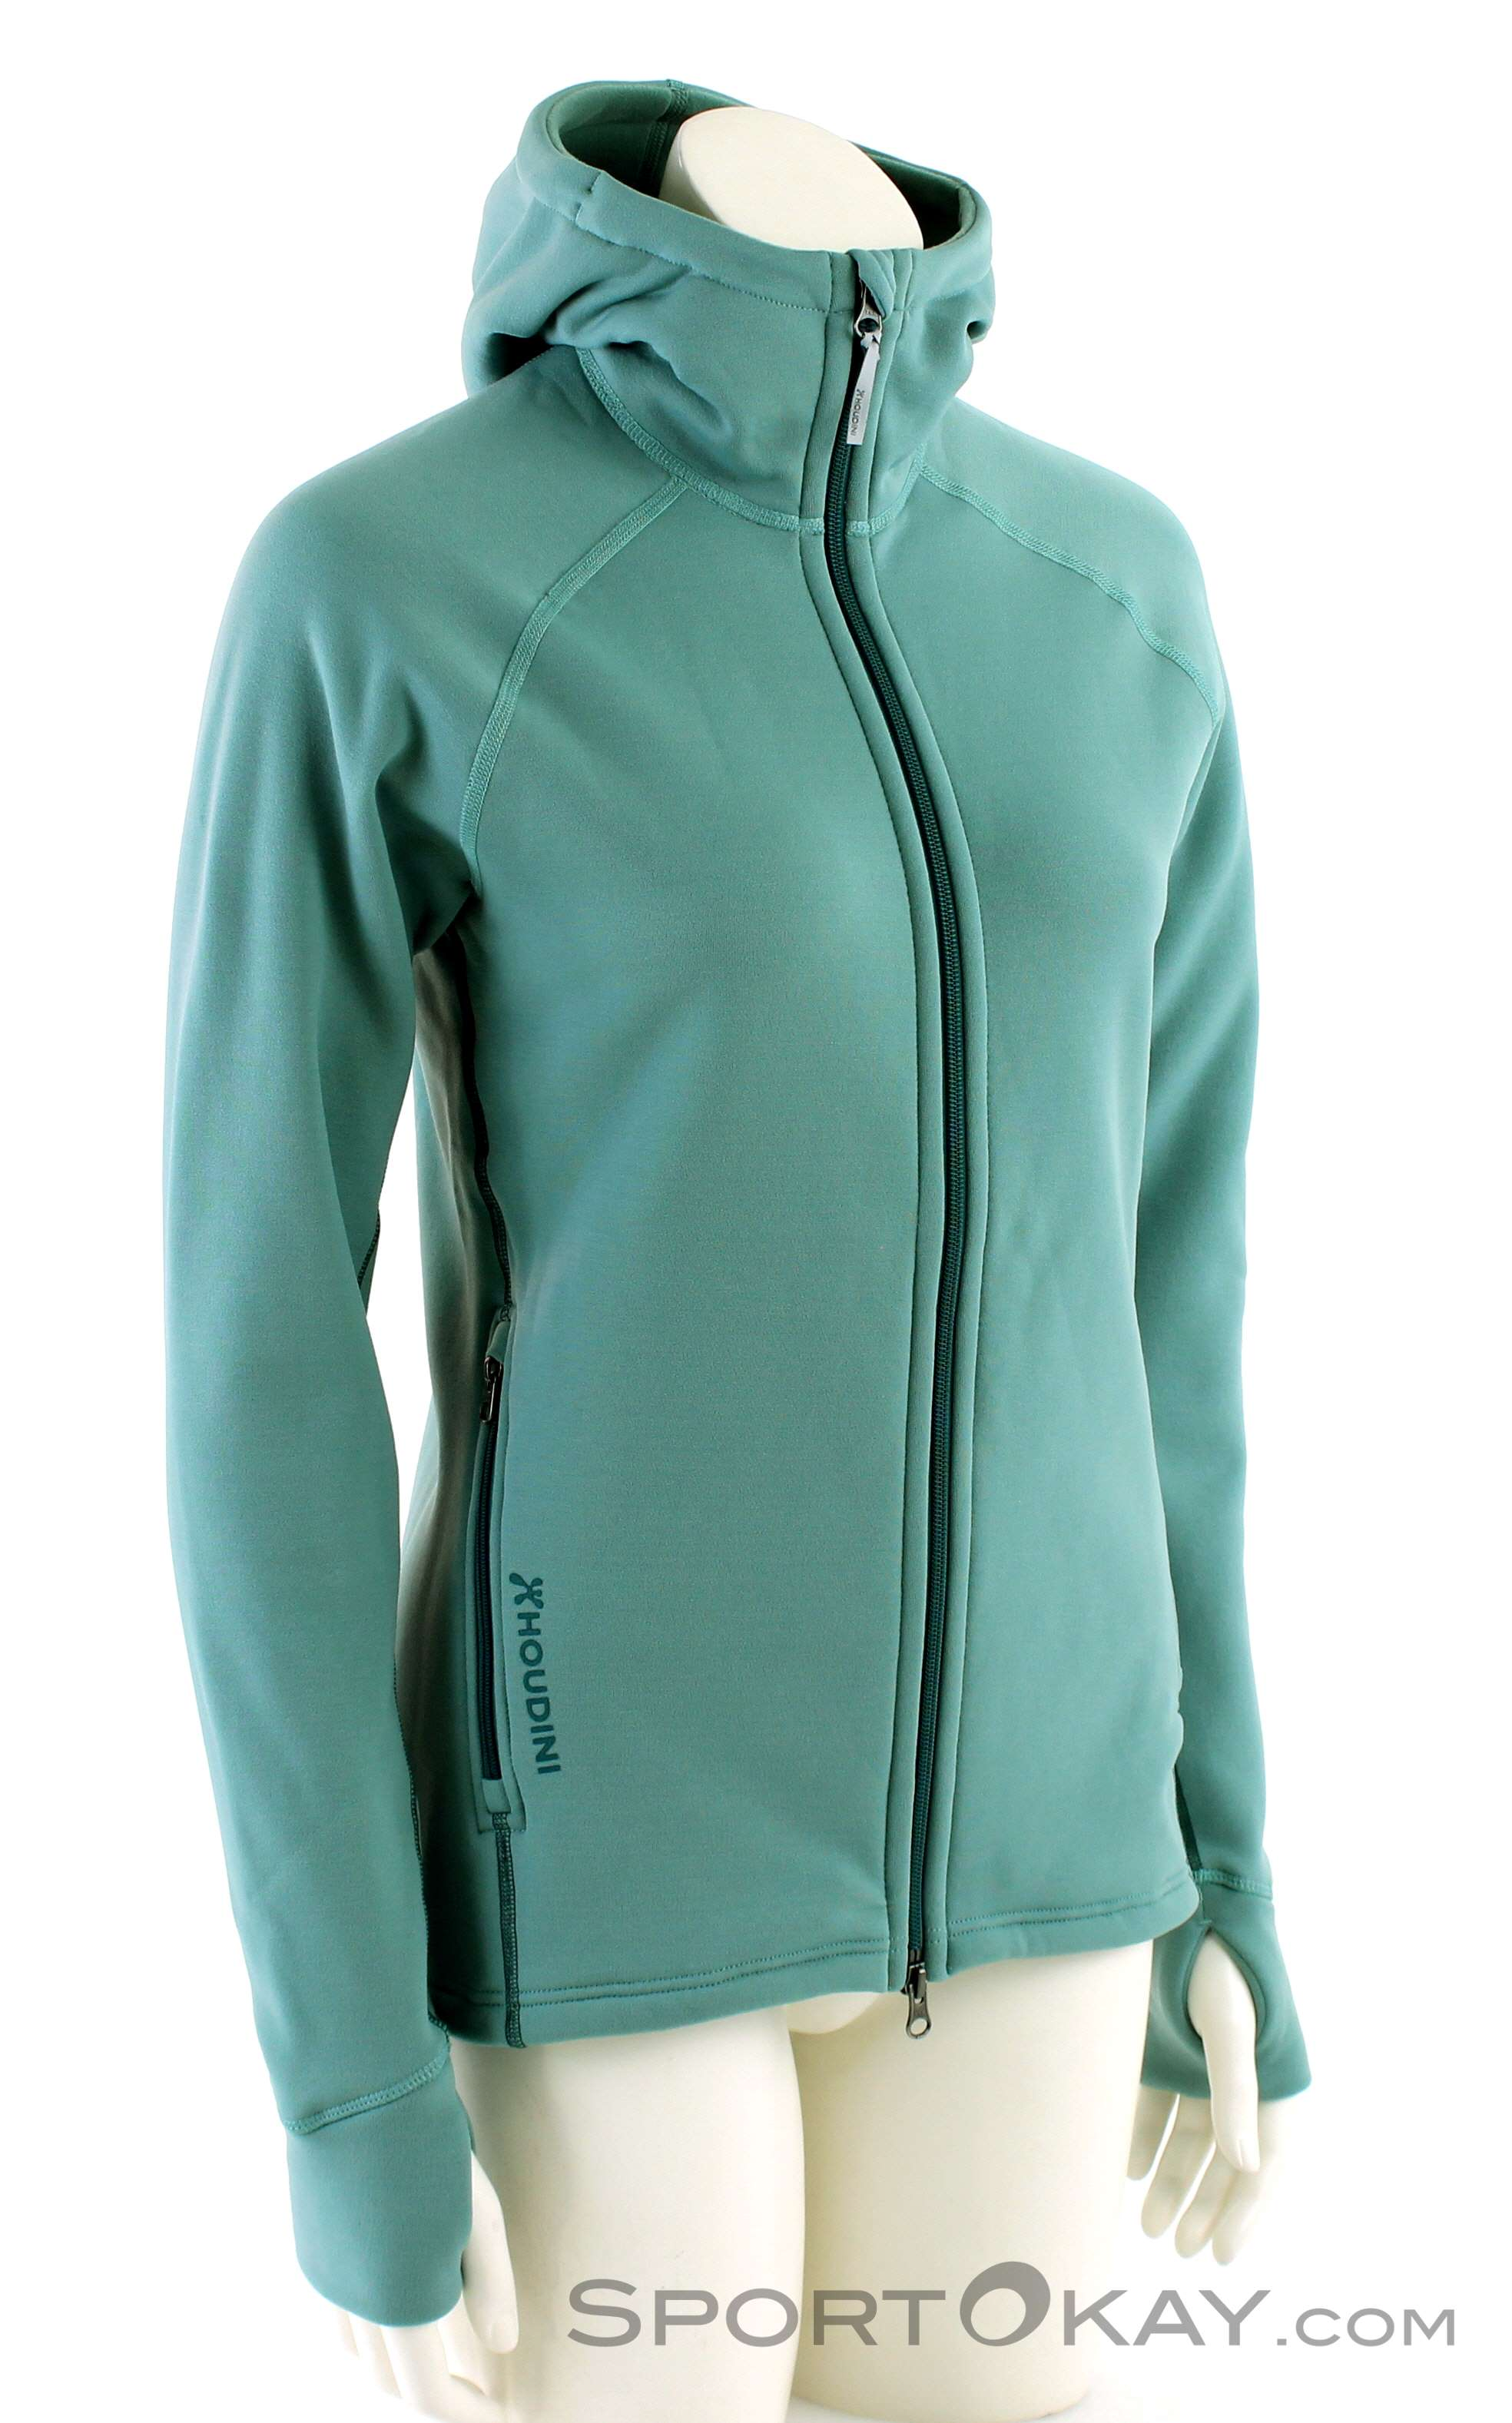 Houdini Houdini Power Houdi Womens Fleece Jacket